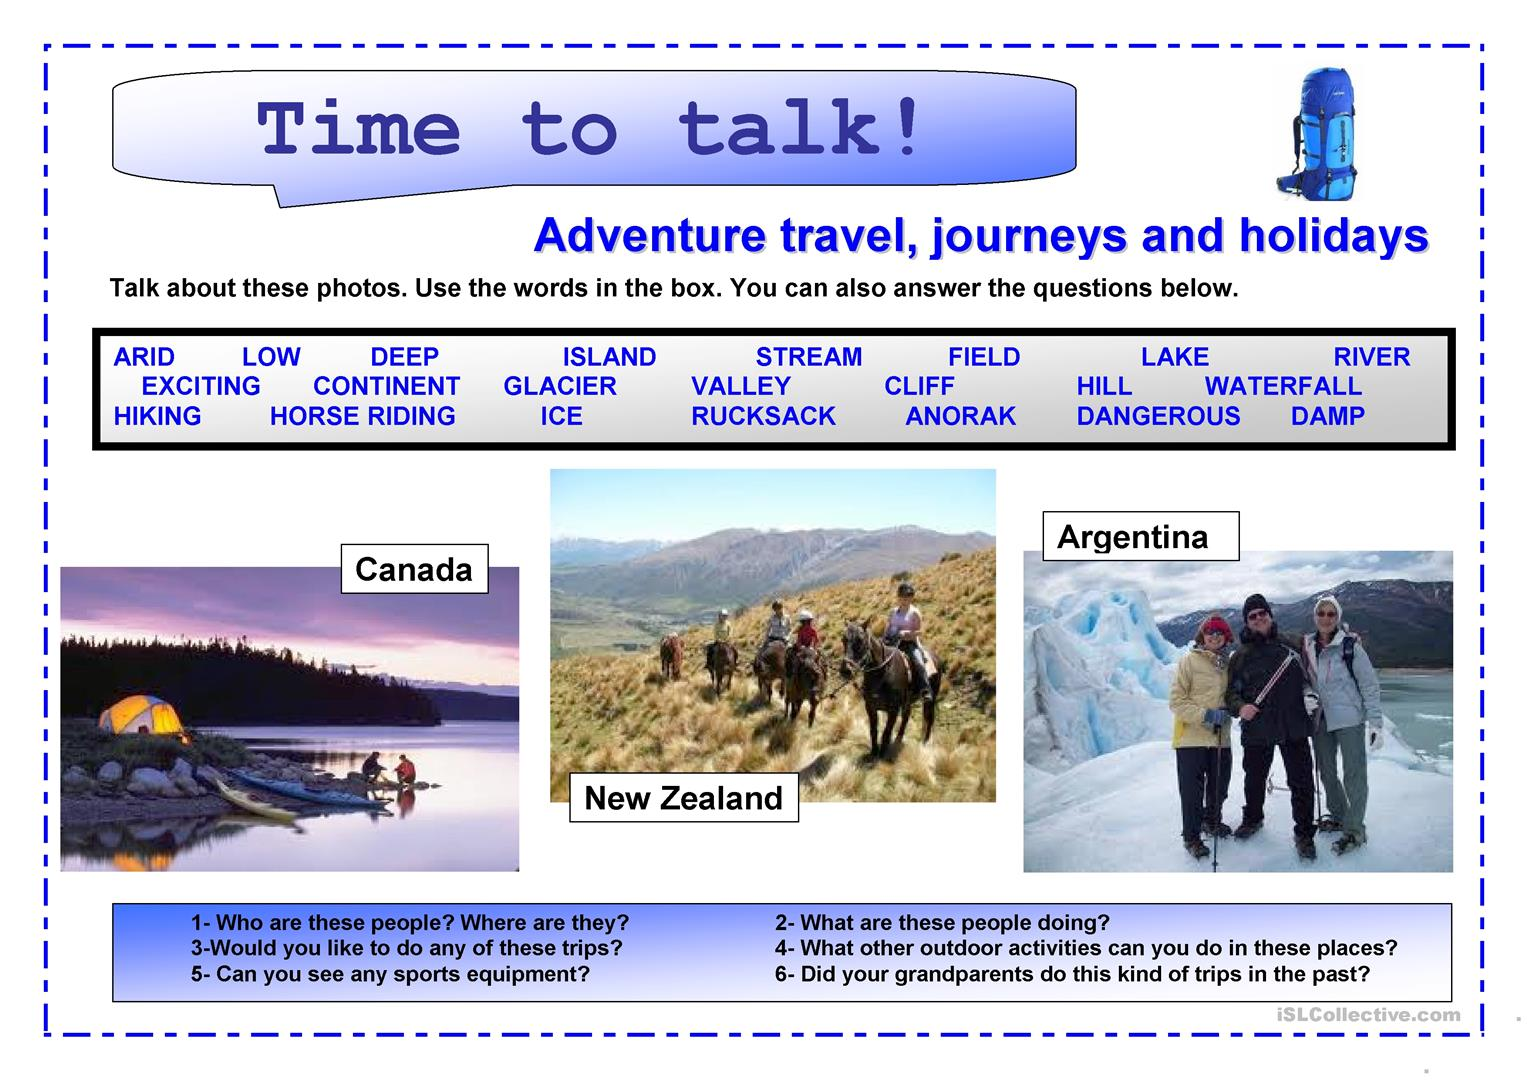 Time To Talk 3 Adventure Travel Journeys And Holidays